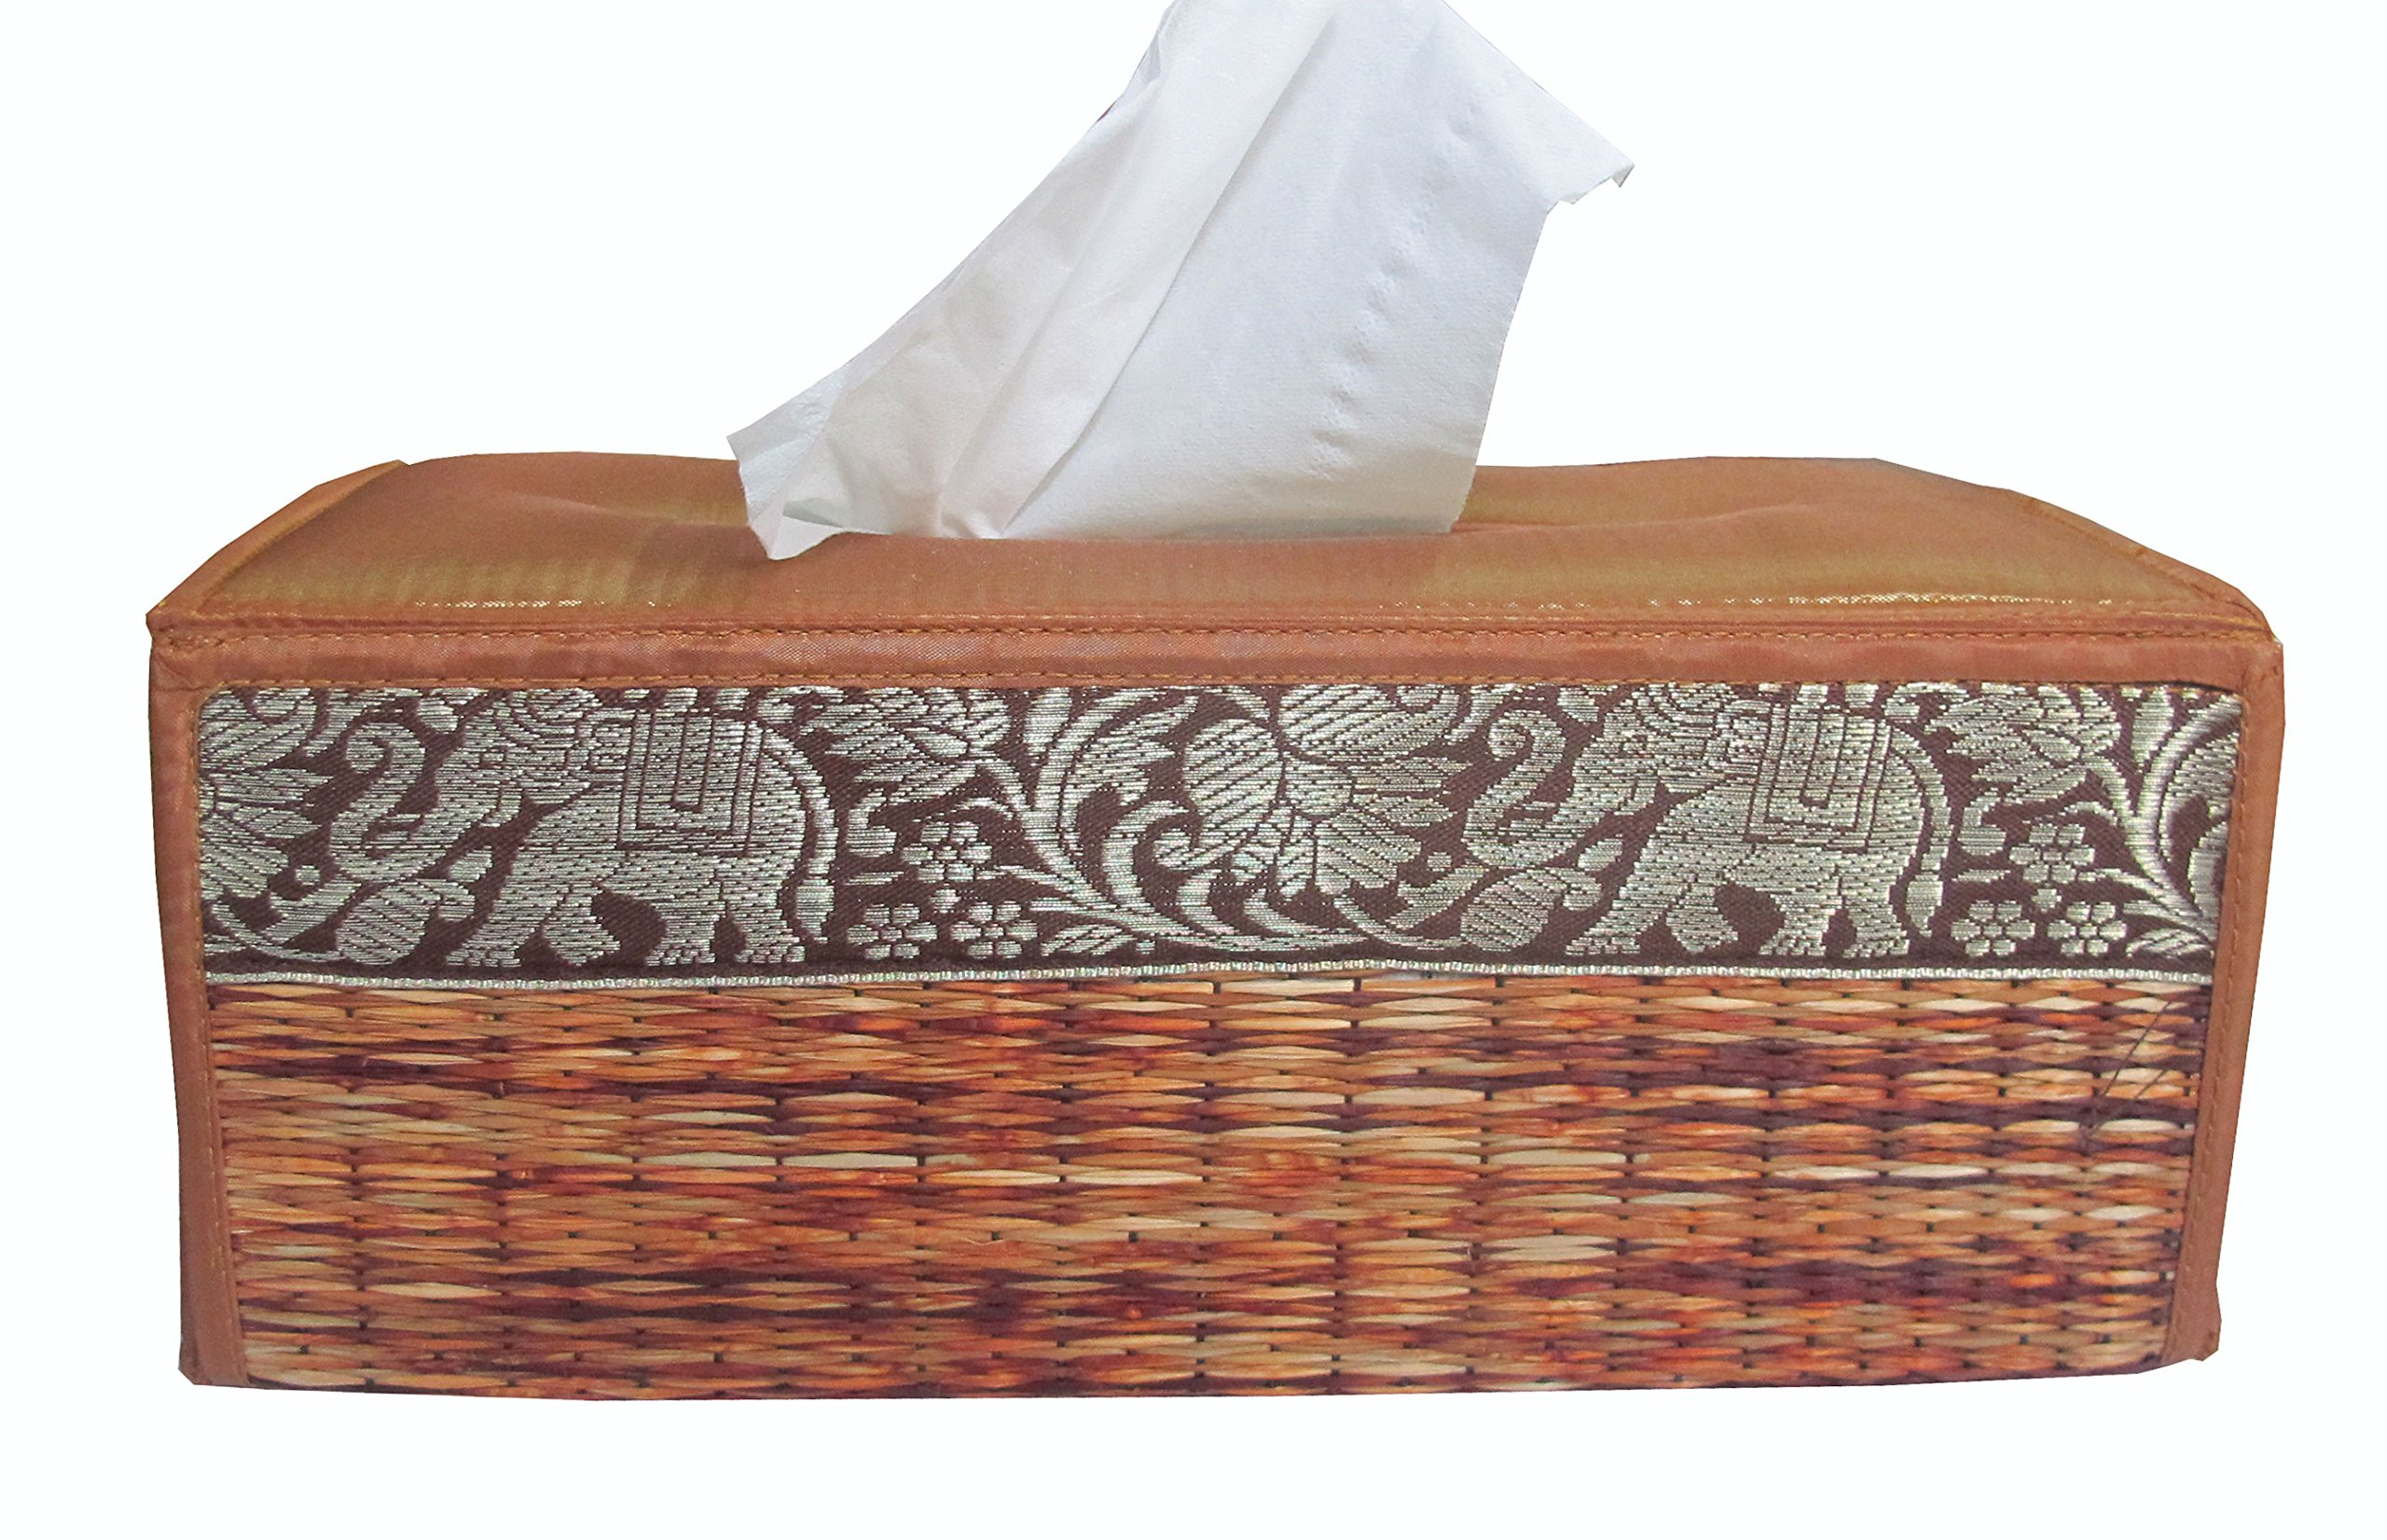 Handmade Rectangular Woven Tissue Box Cover Made From Thai Natural Reed Straw with Striped Elephant Design by Thaiwallmart